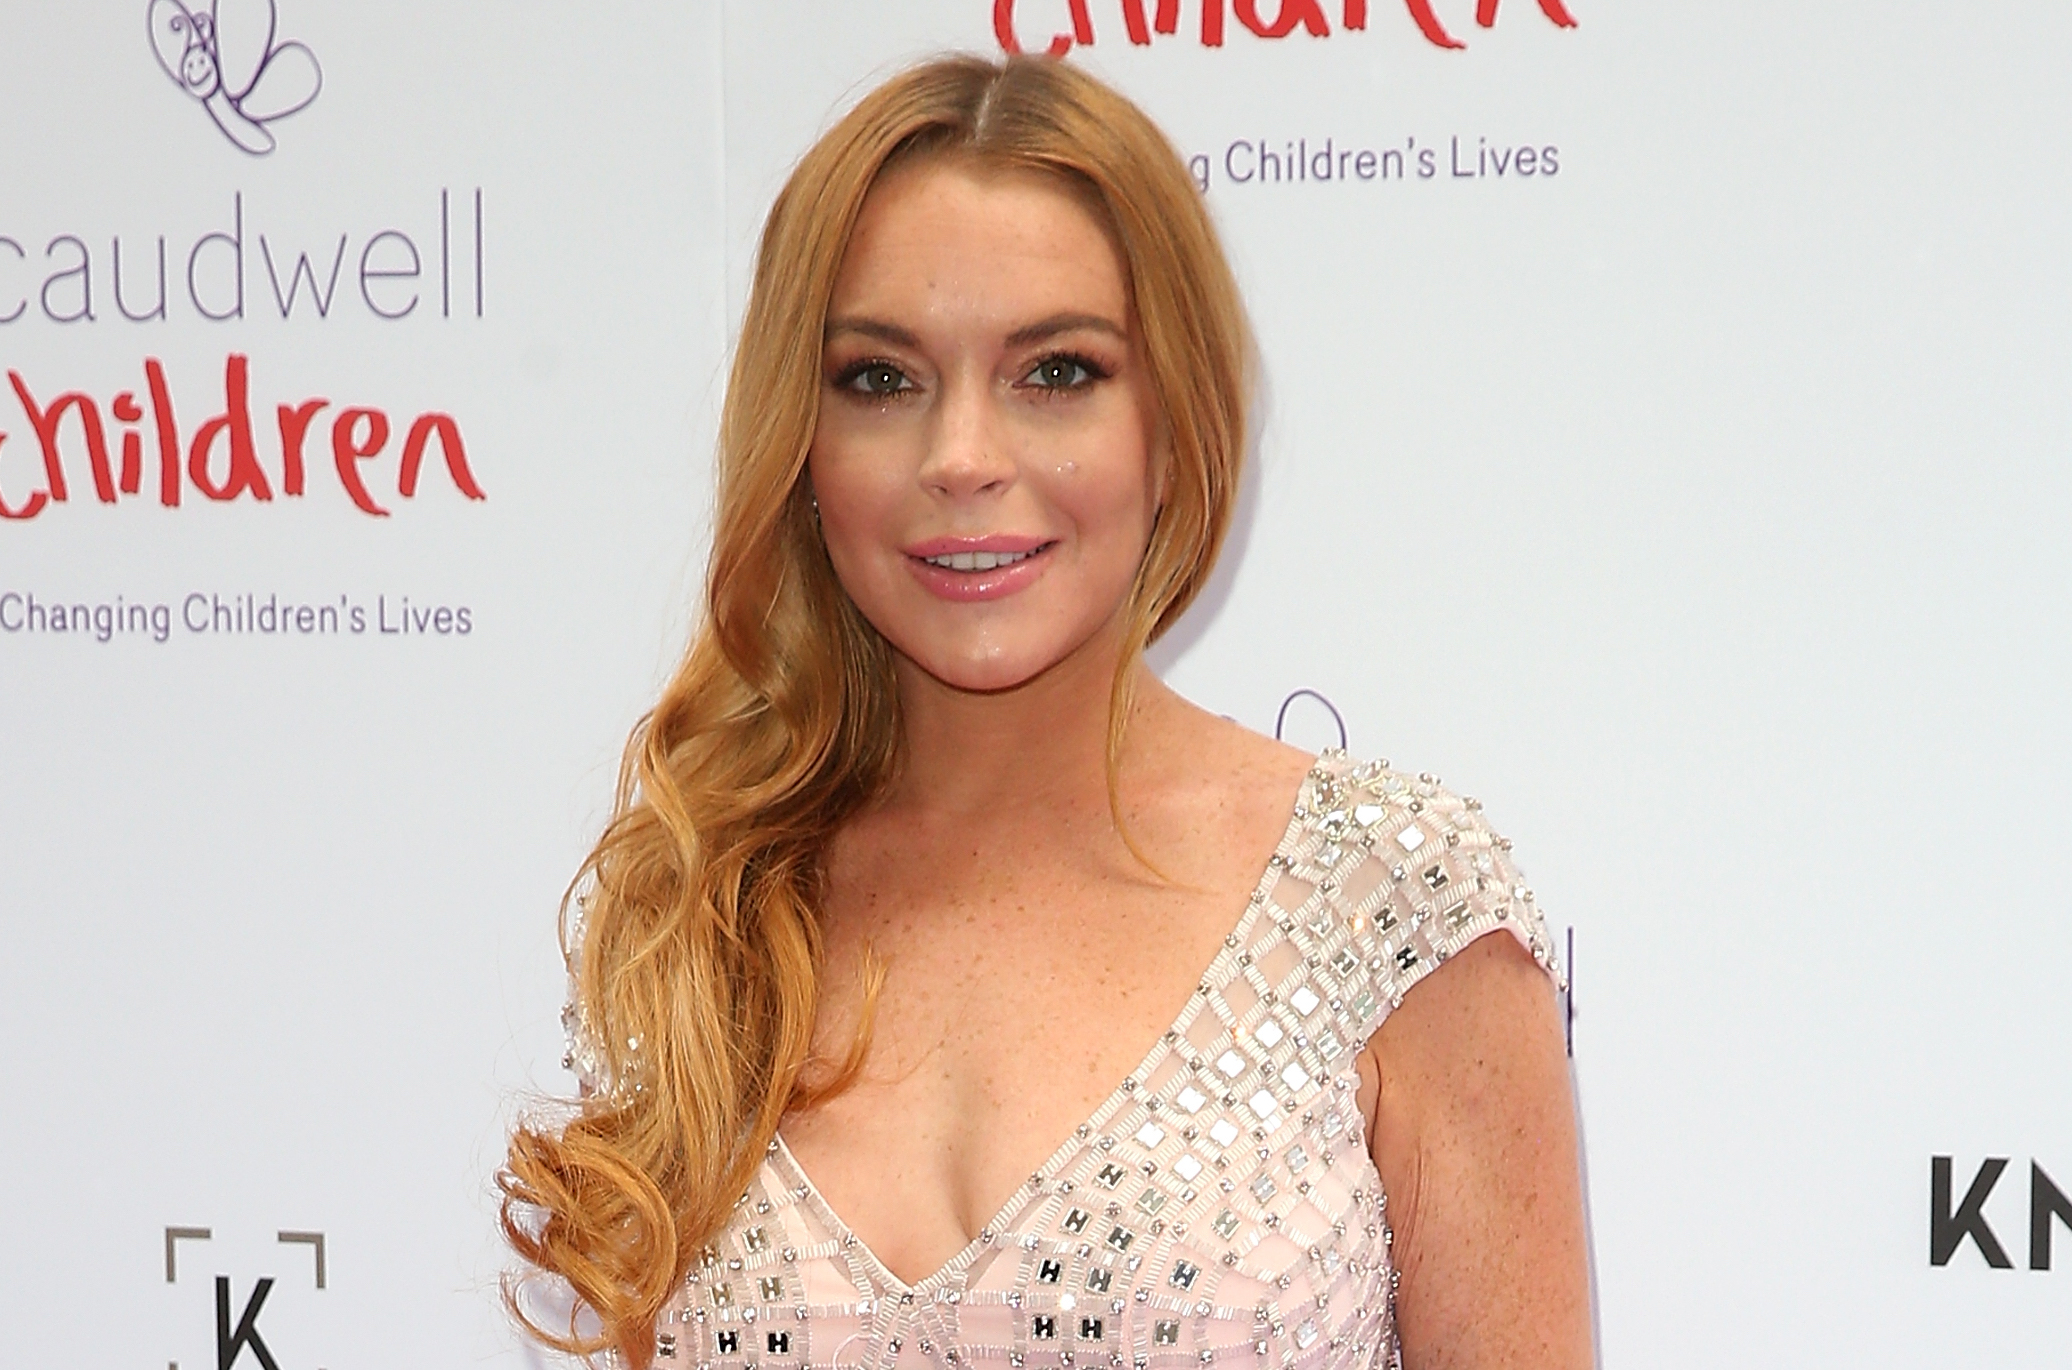 Lindsay Lohan's holiday look has us tickled pink and feeling fringe